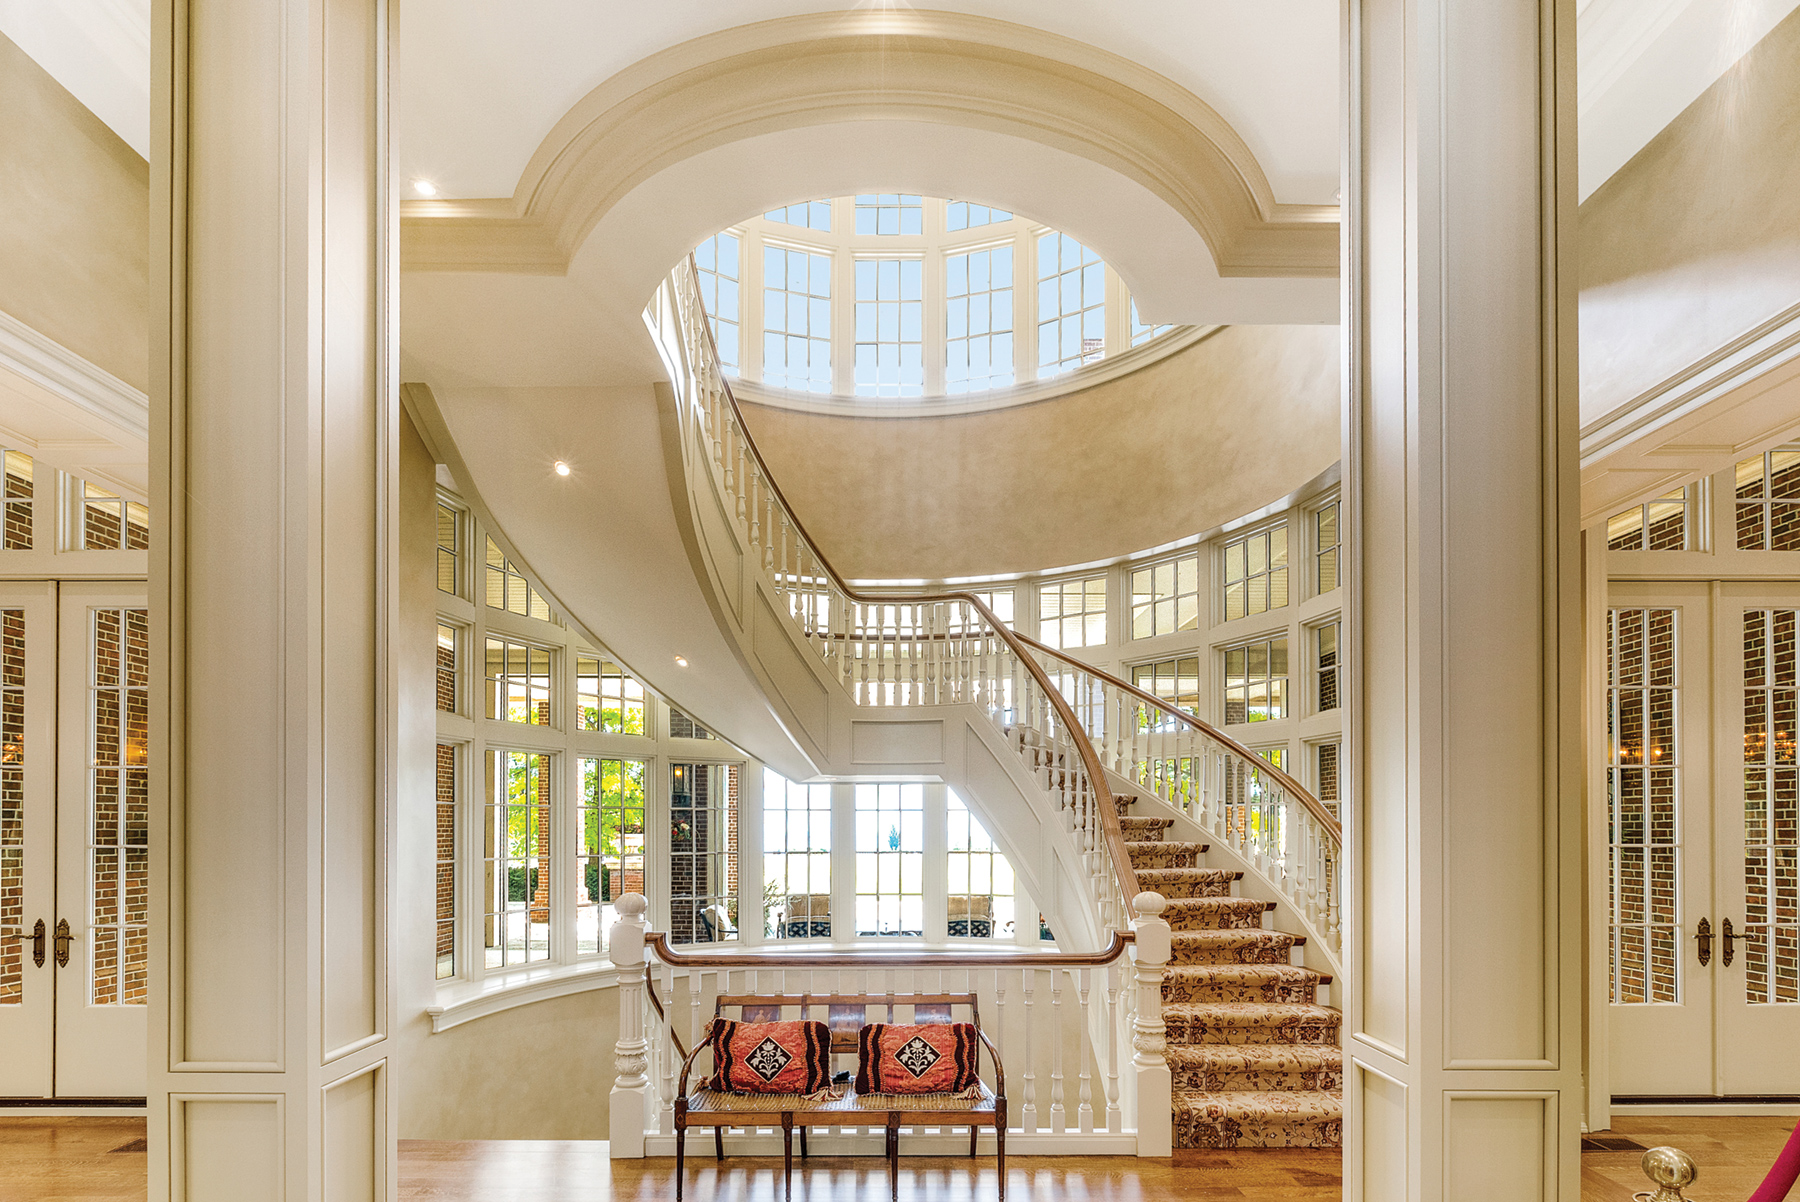 Expansive windows & magnificent domed glass ceilings allow natural light to stream into the foyer